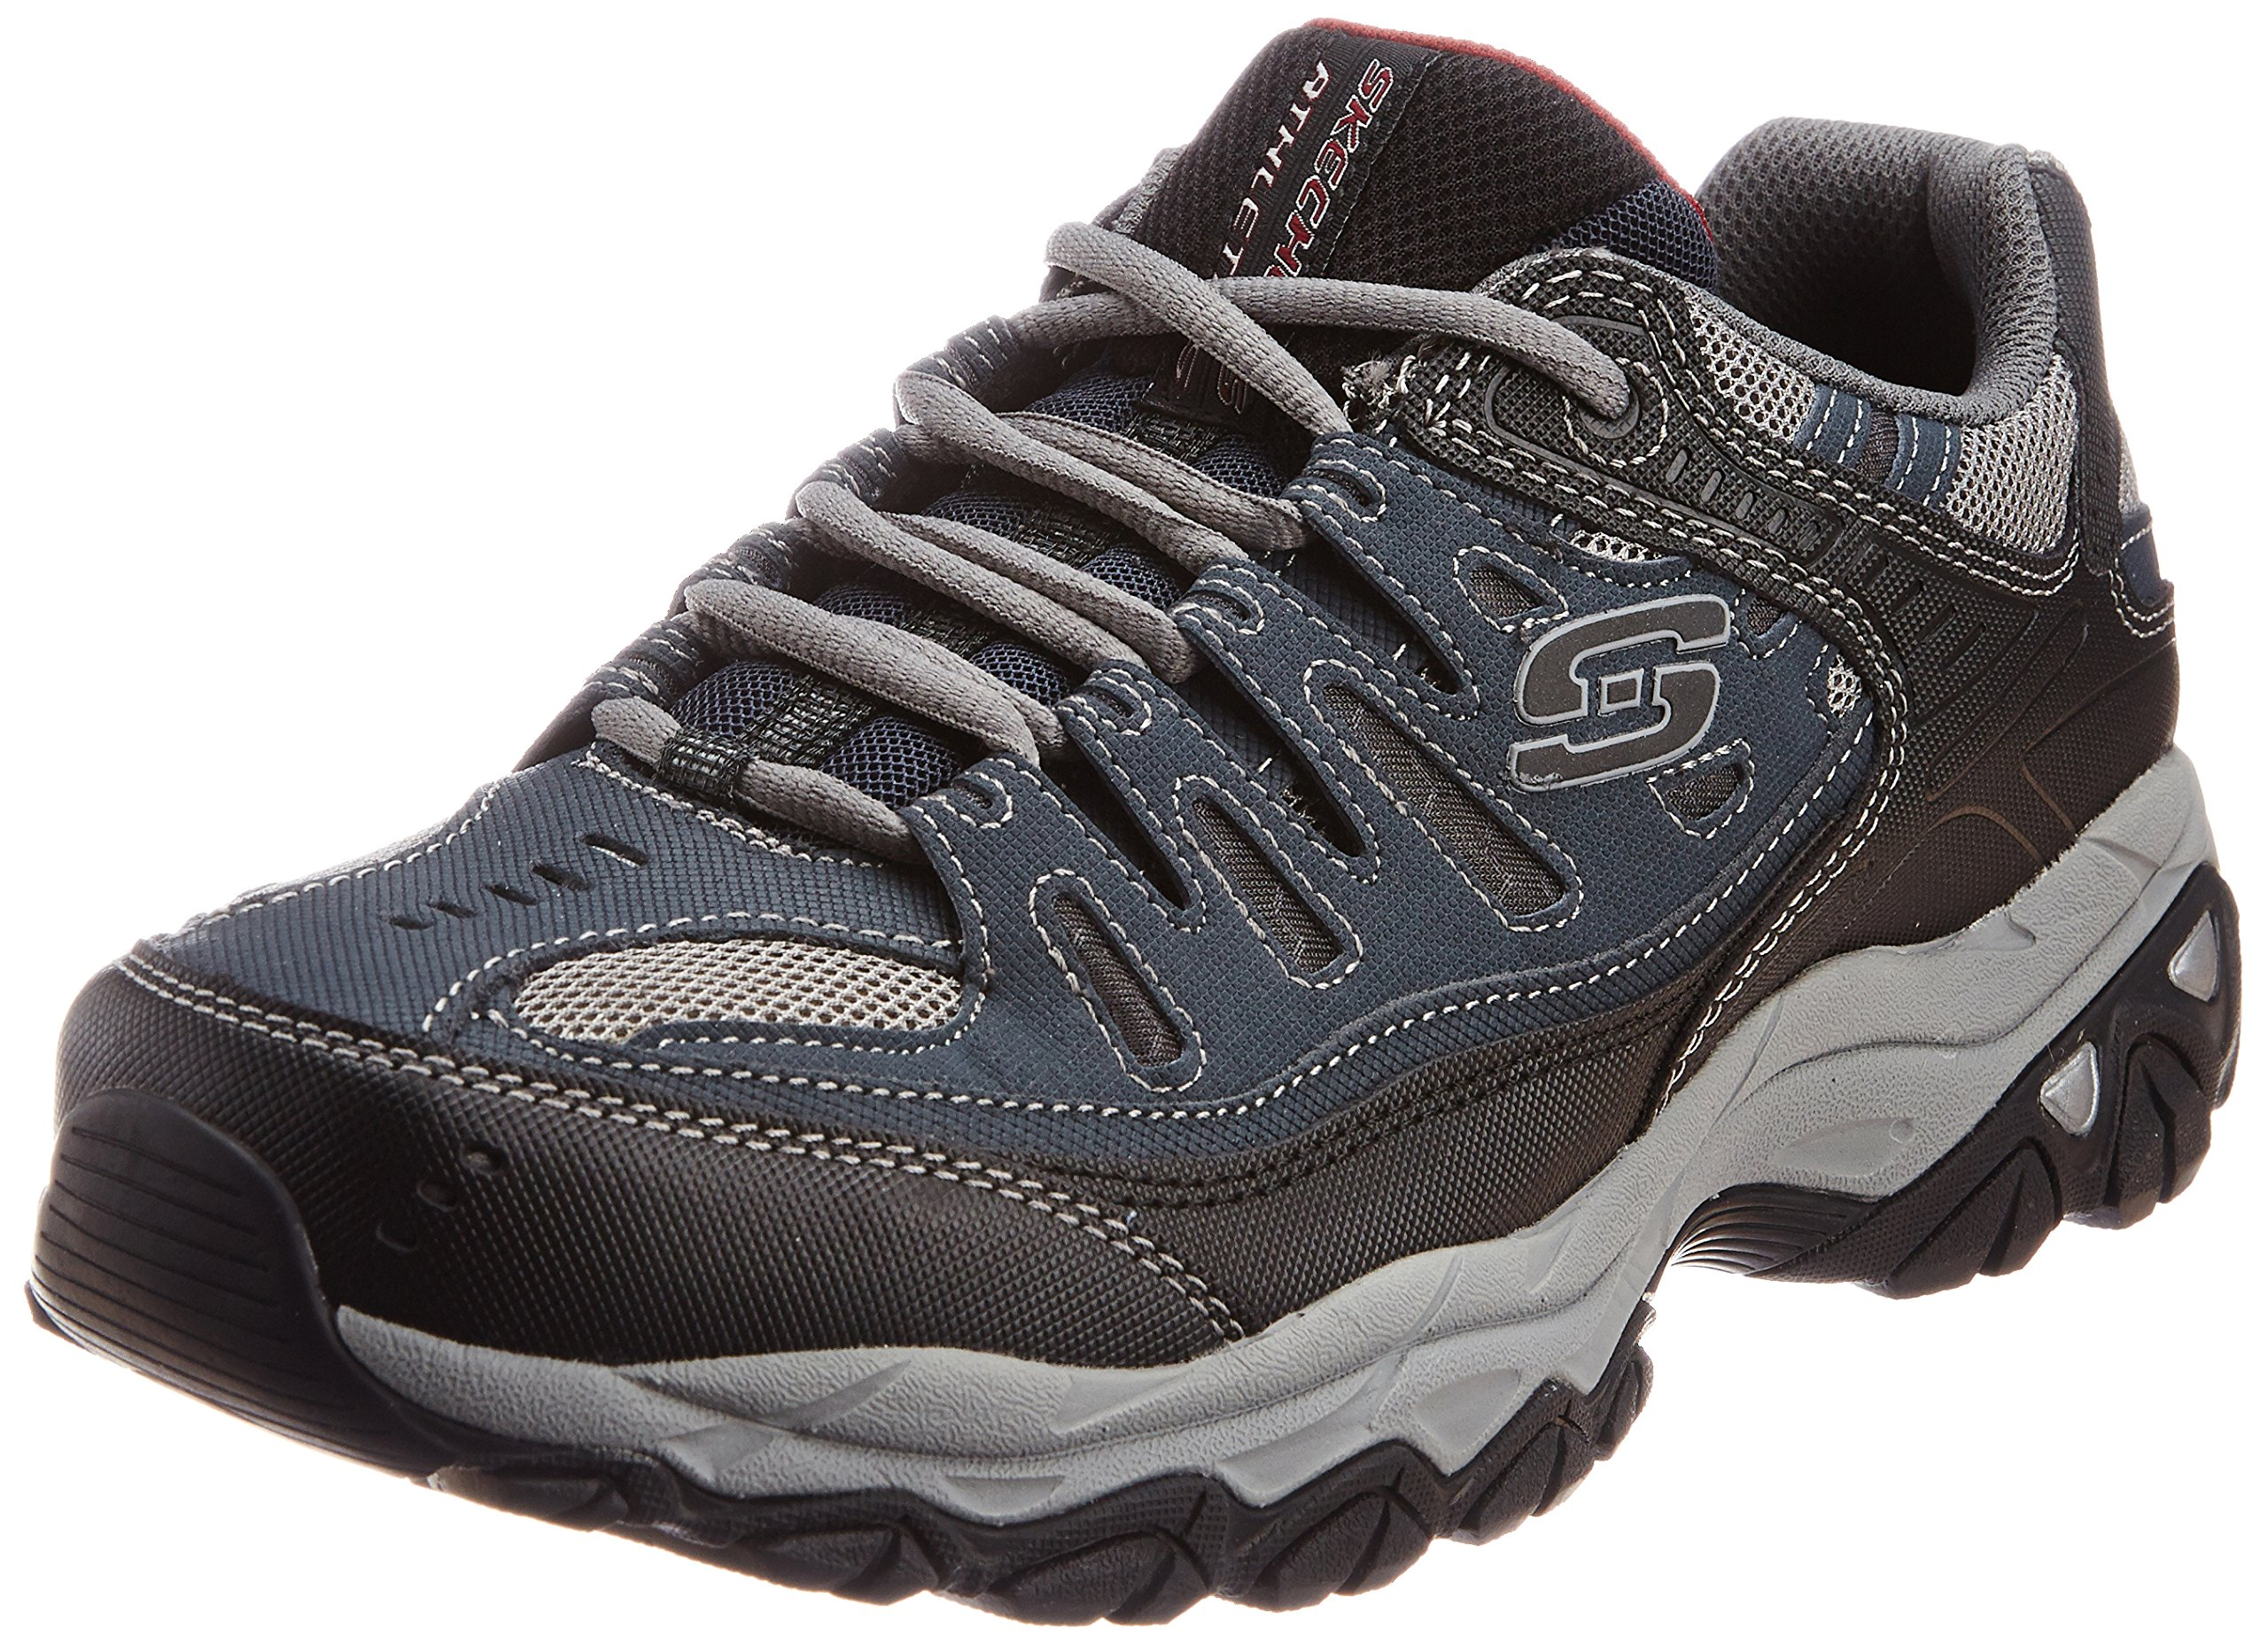 Skechers Men's AFTER BURN M.FIT Memory Foam Lace-Up Sneaker, Navy, 14 M US by Skechers